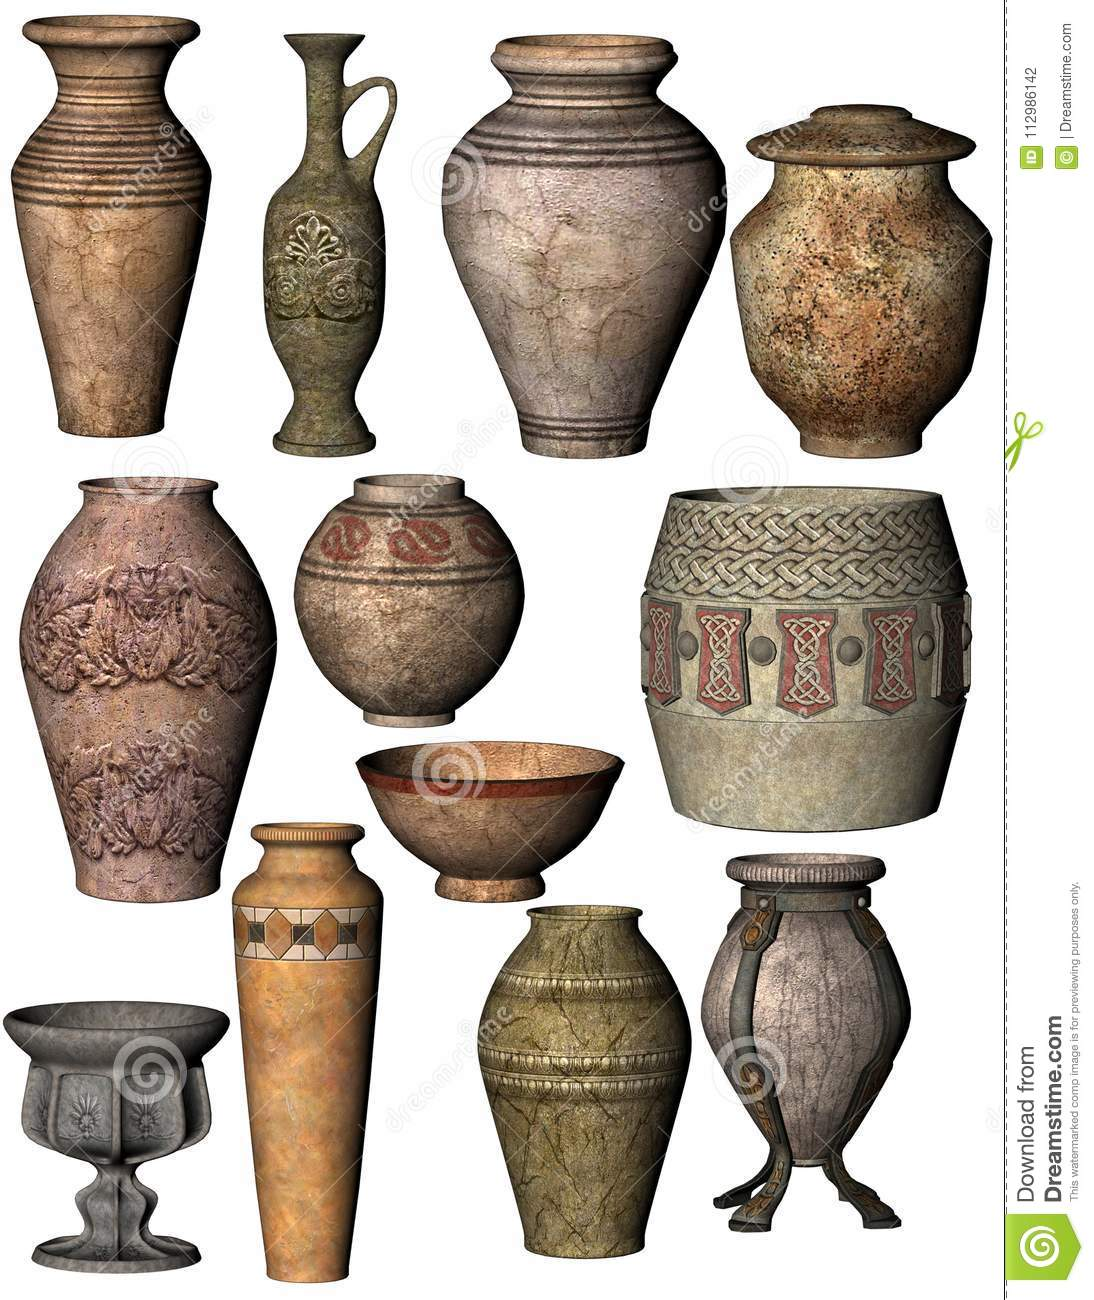 Collage Of Ancient Pottery Including Bowls, Urns And Vases